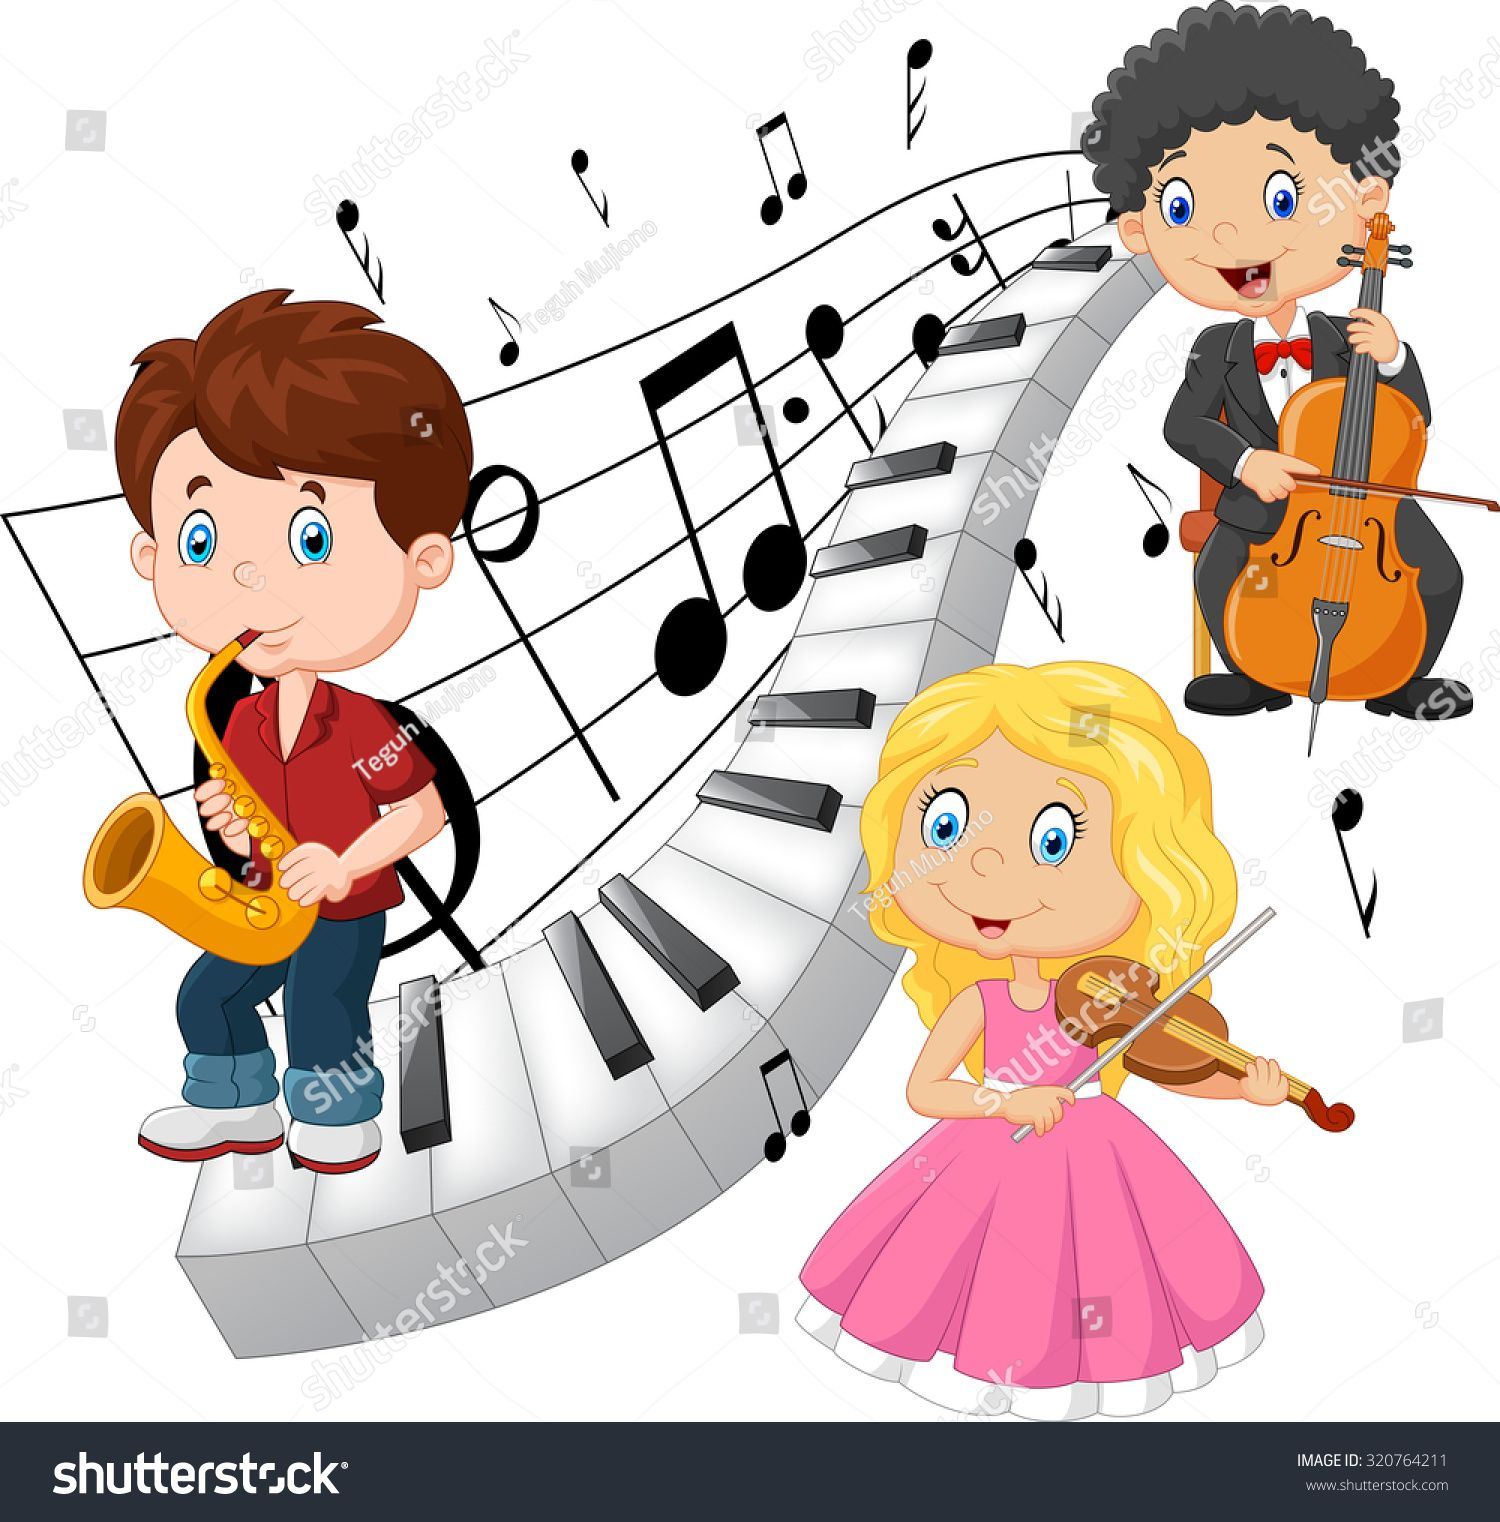 Music kid. Little kids playing with